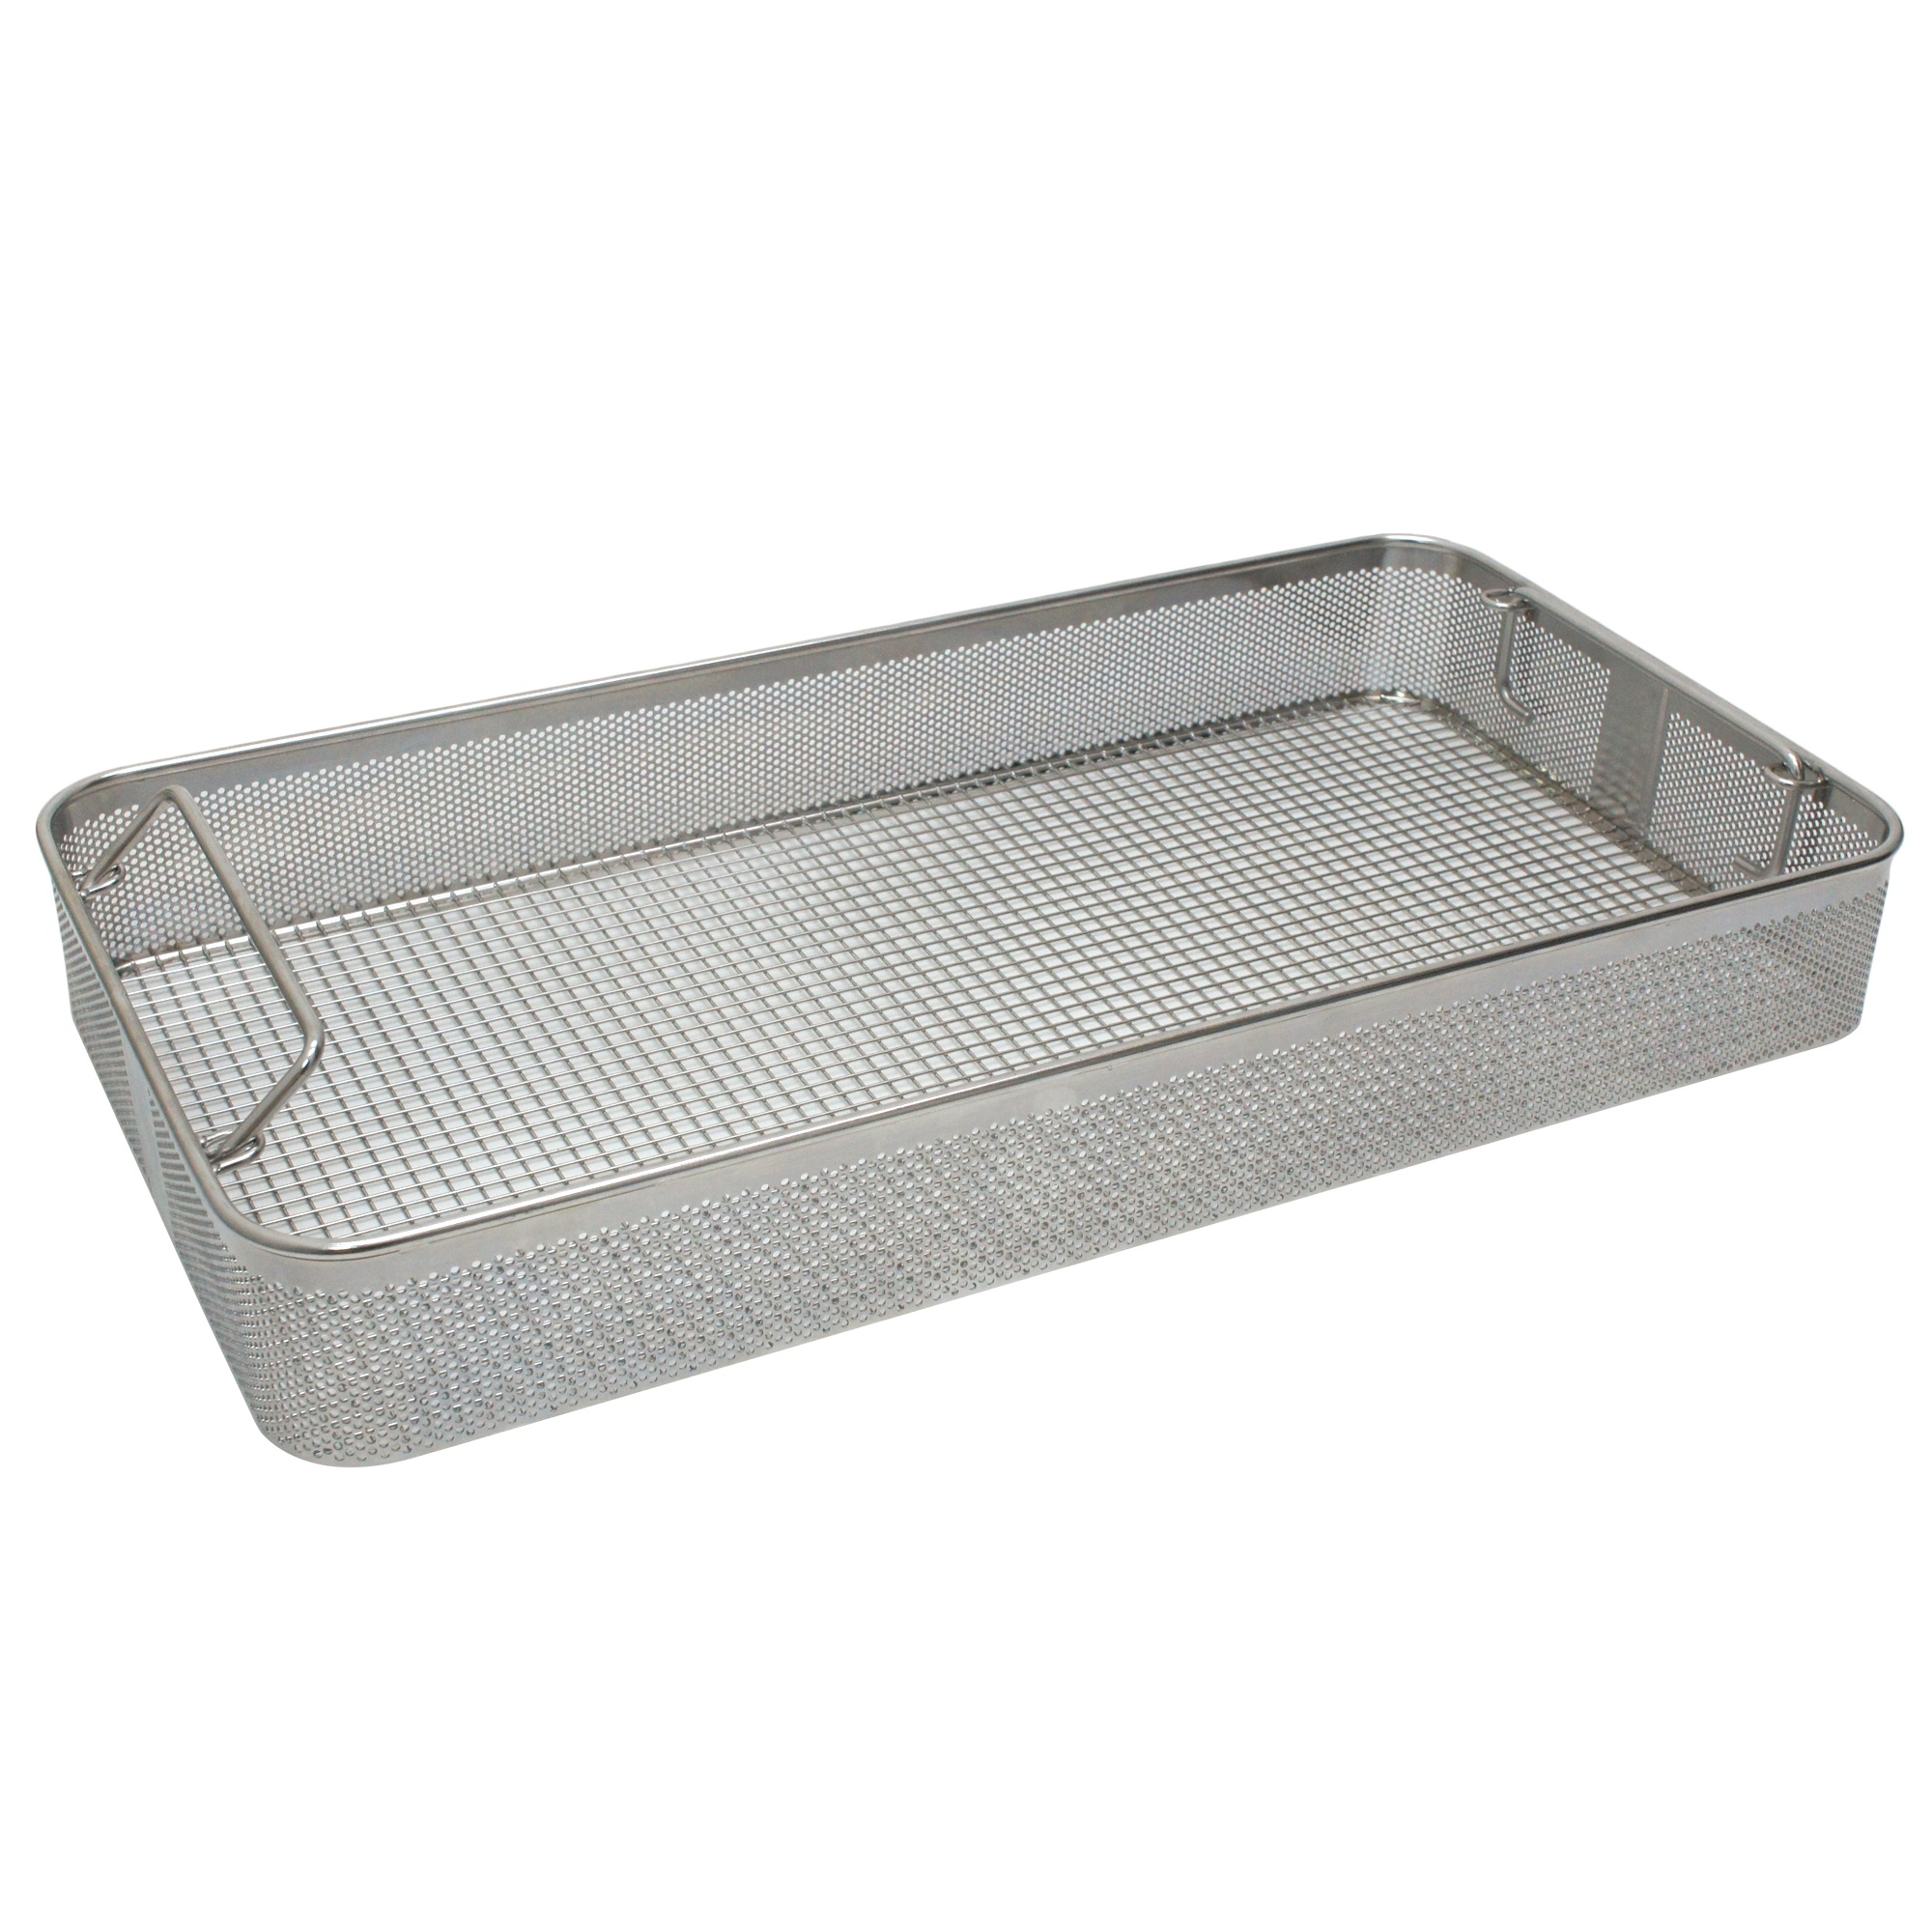 Perforated plate tray Image